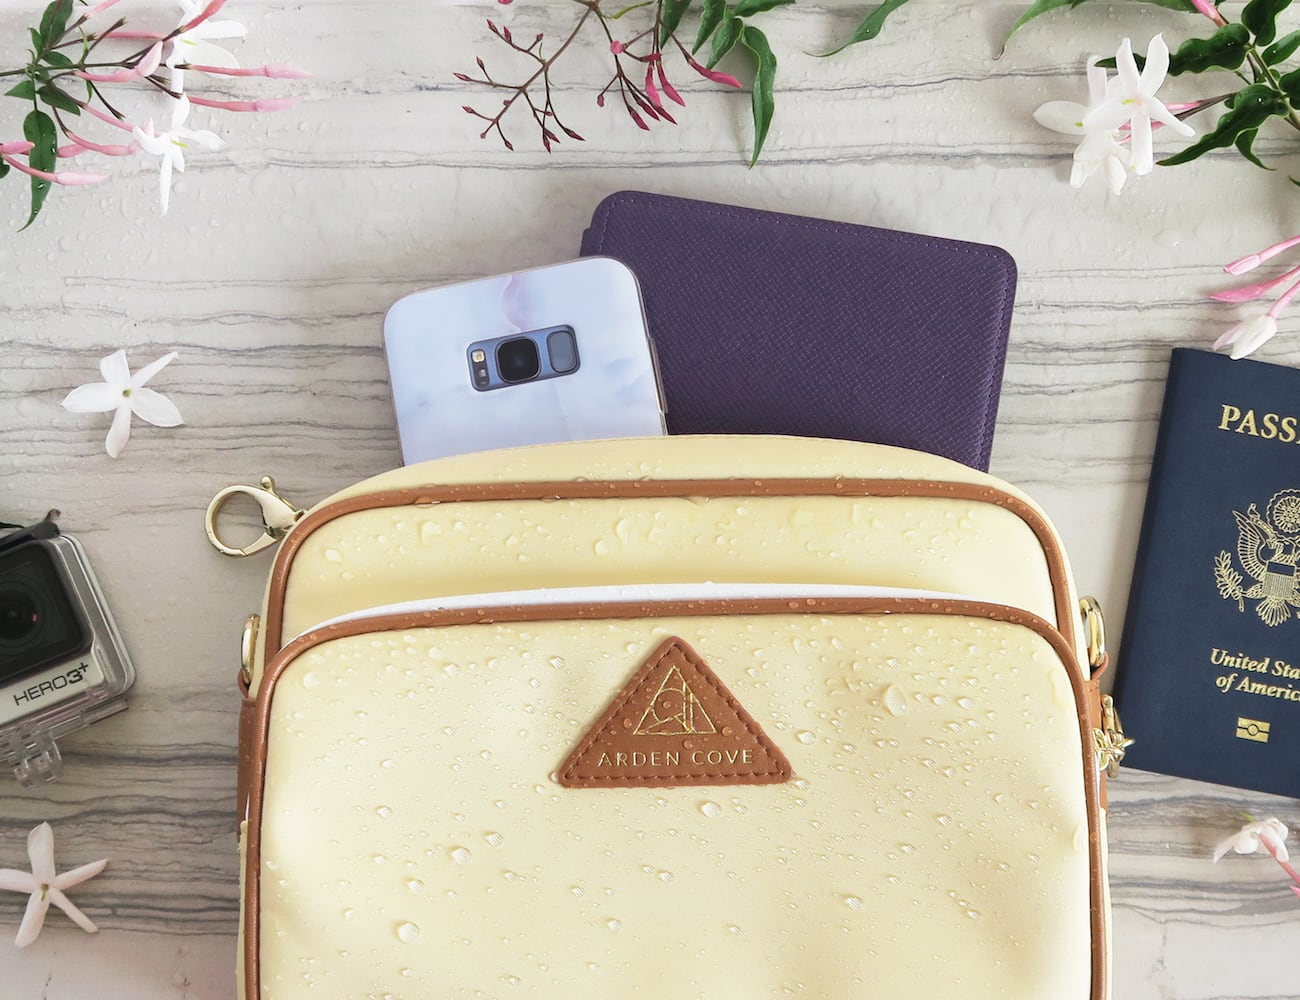 Arden Cove Anti-Theft Waterproof Travel Crossbody